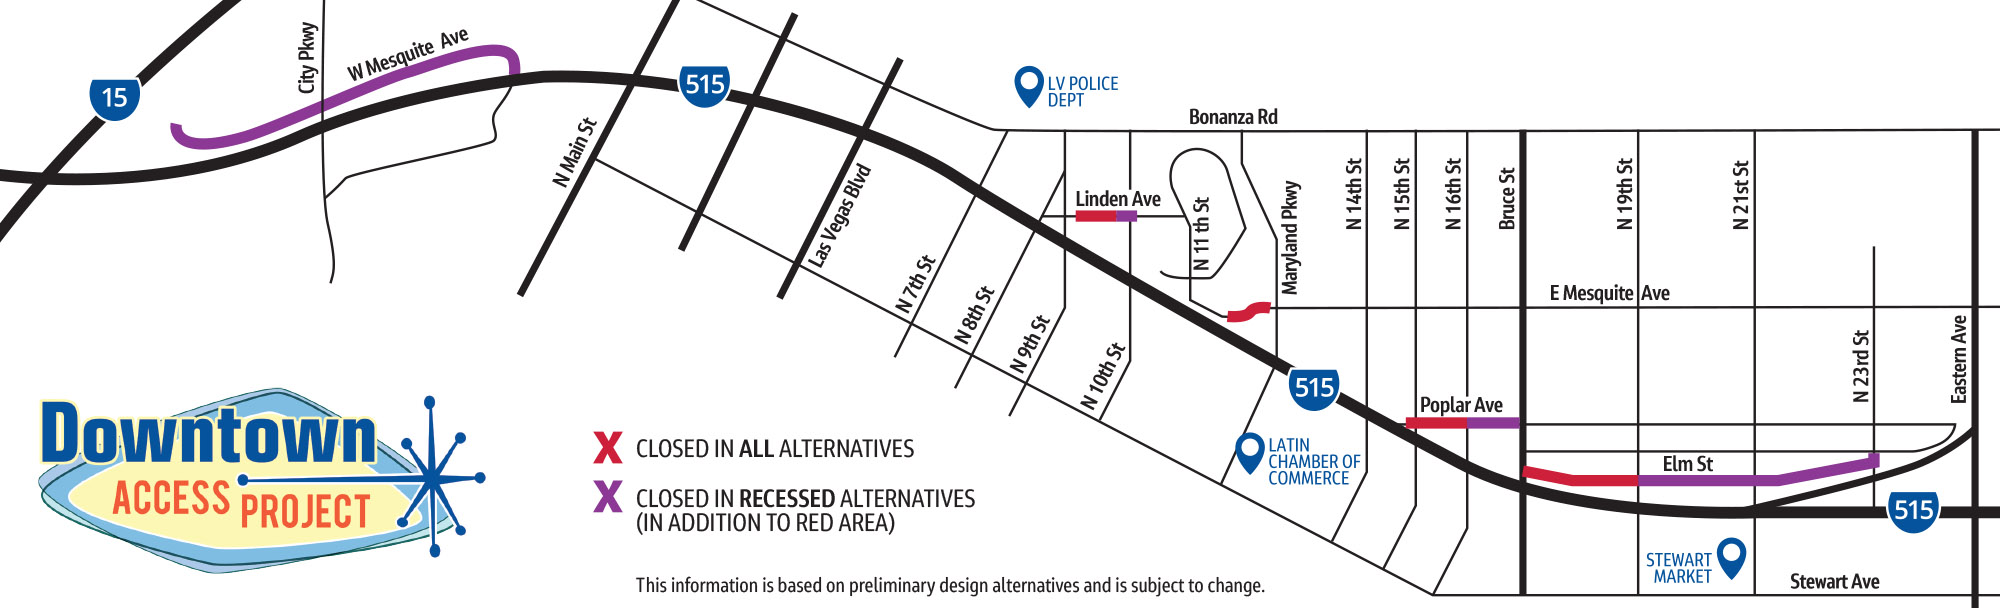 Map of street closures for various alternatives.